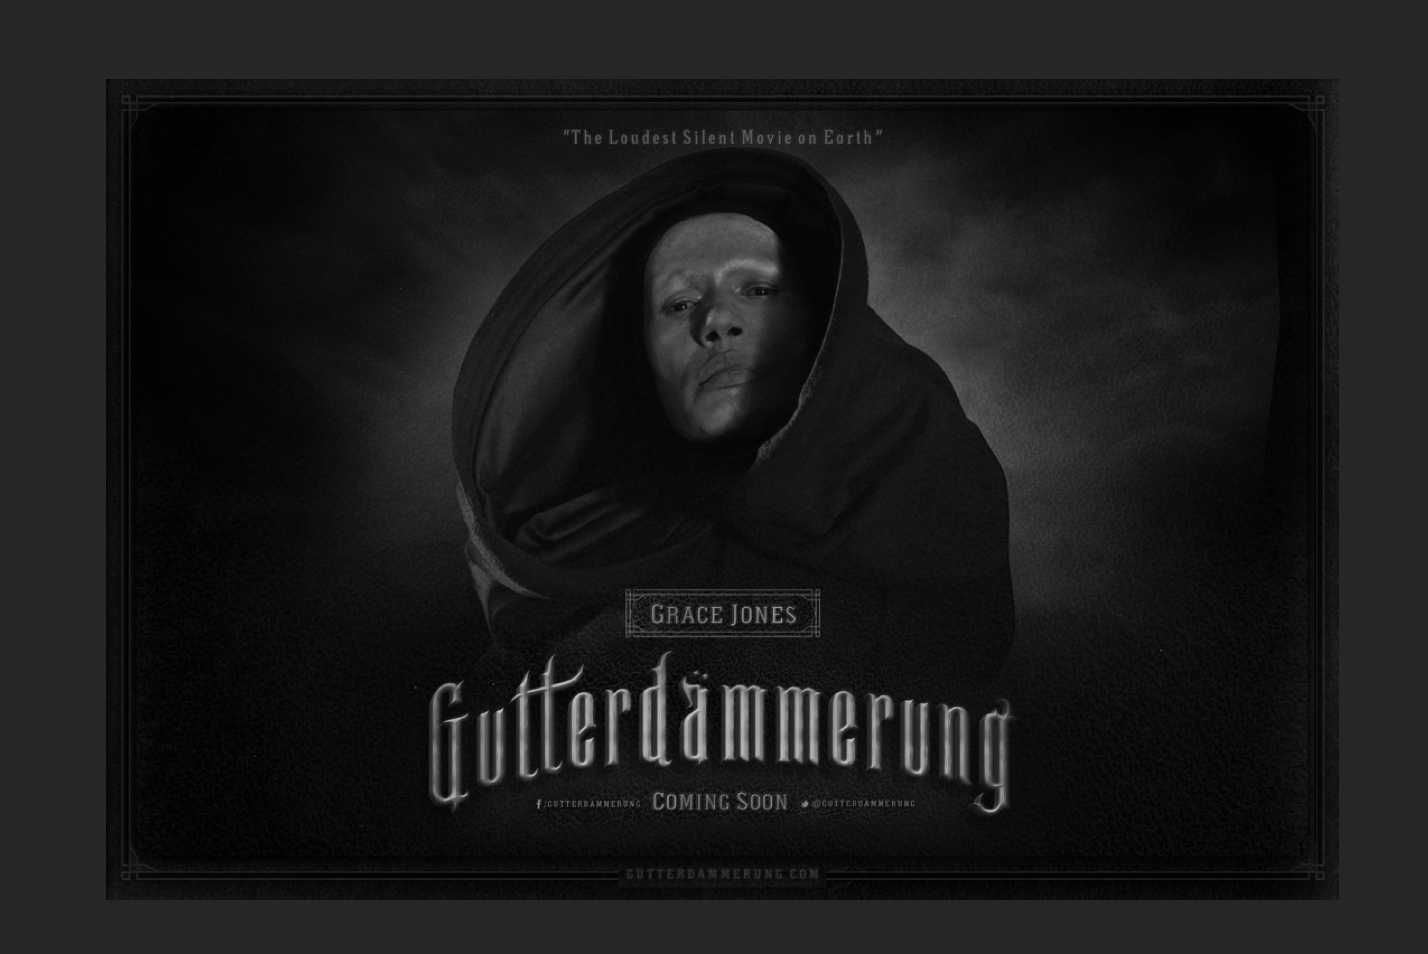 gutterdammerung grace jones